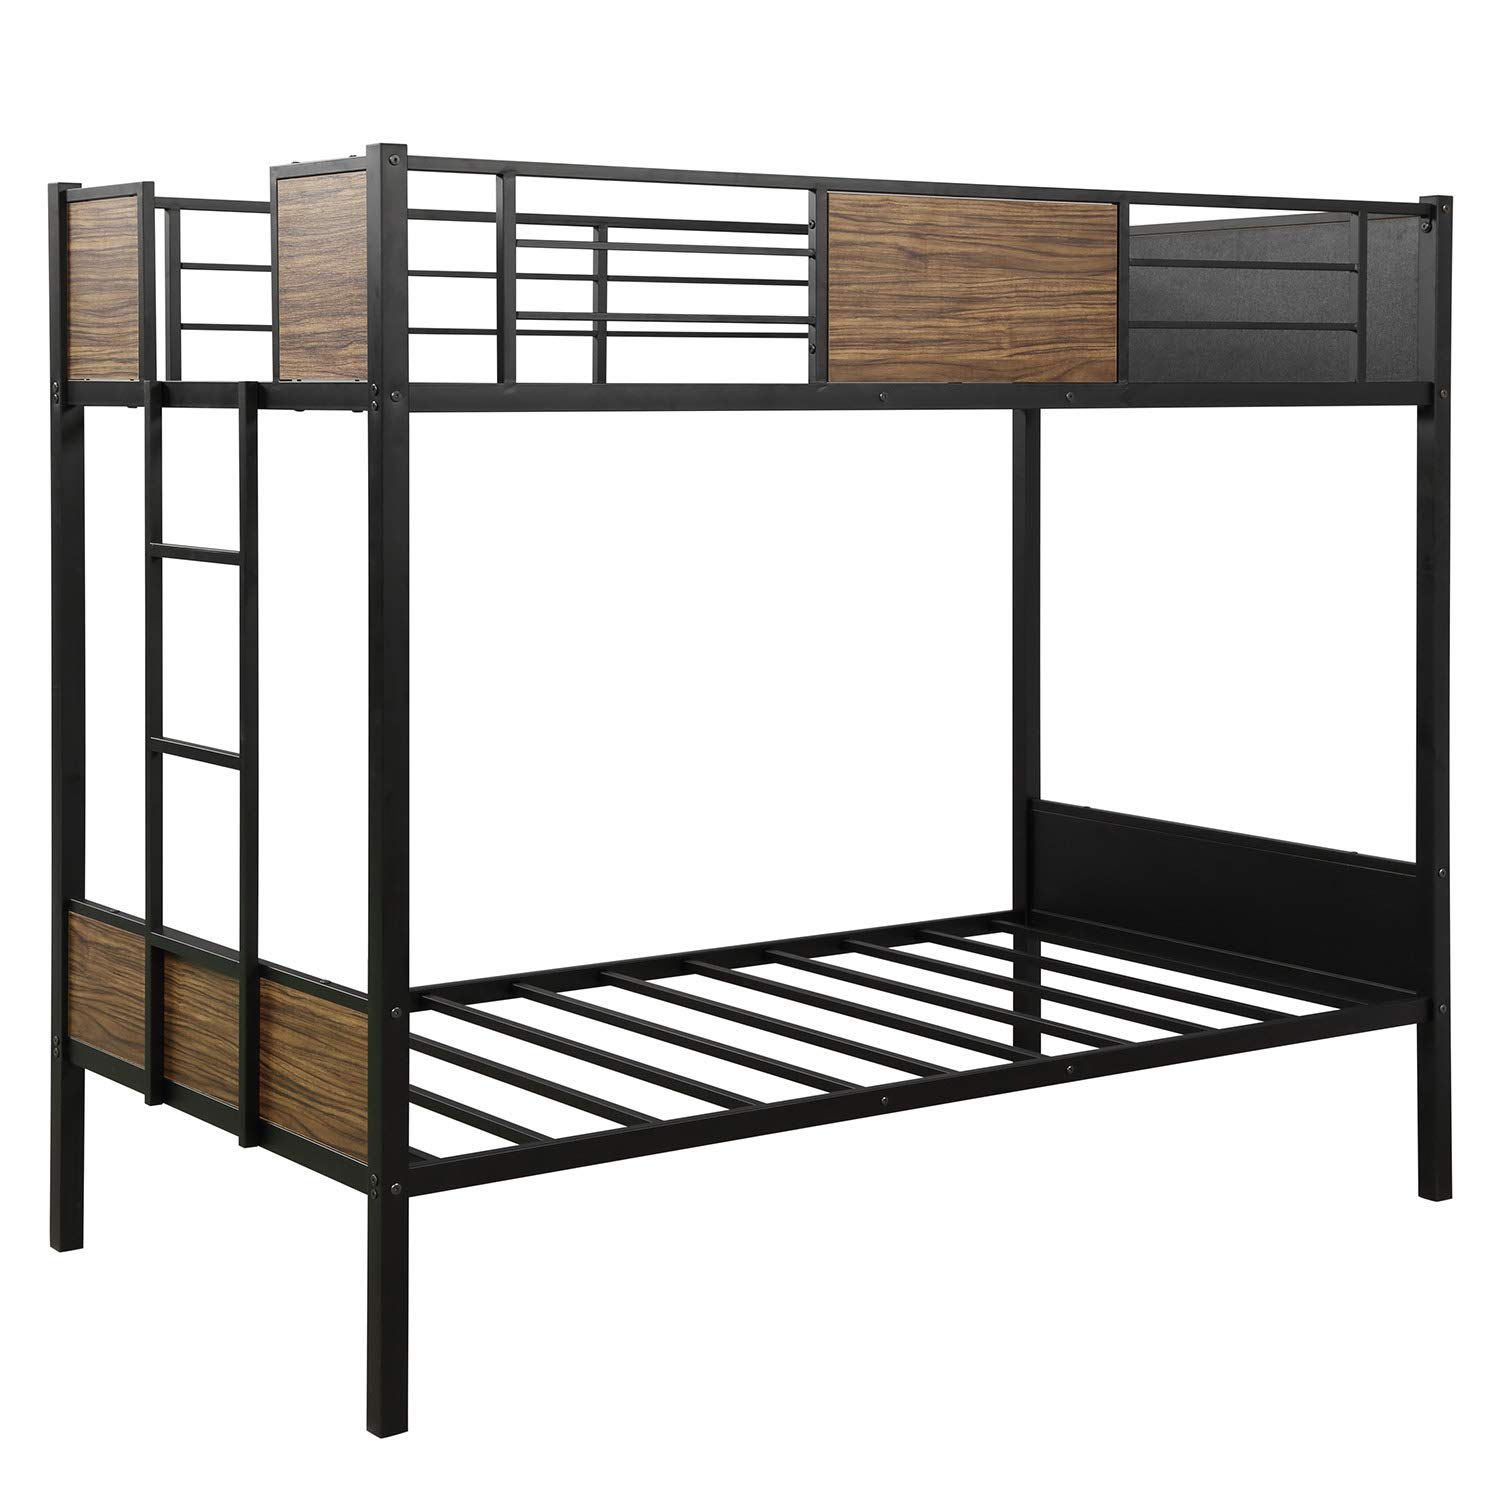 Recaceik Twin Bunk Bed,Full Steel Metal Frame Living with Ladder and Safety Rails, Brown